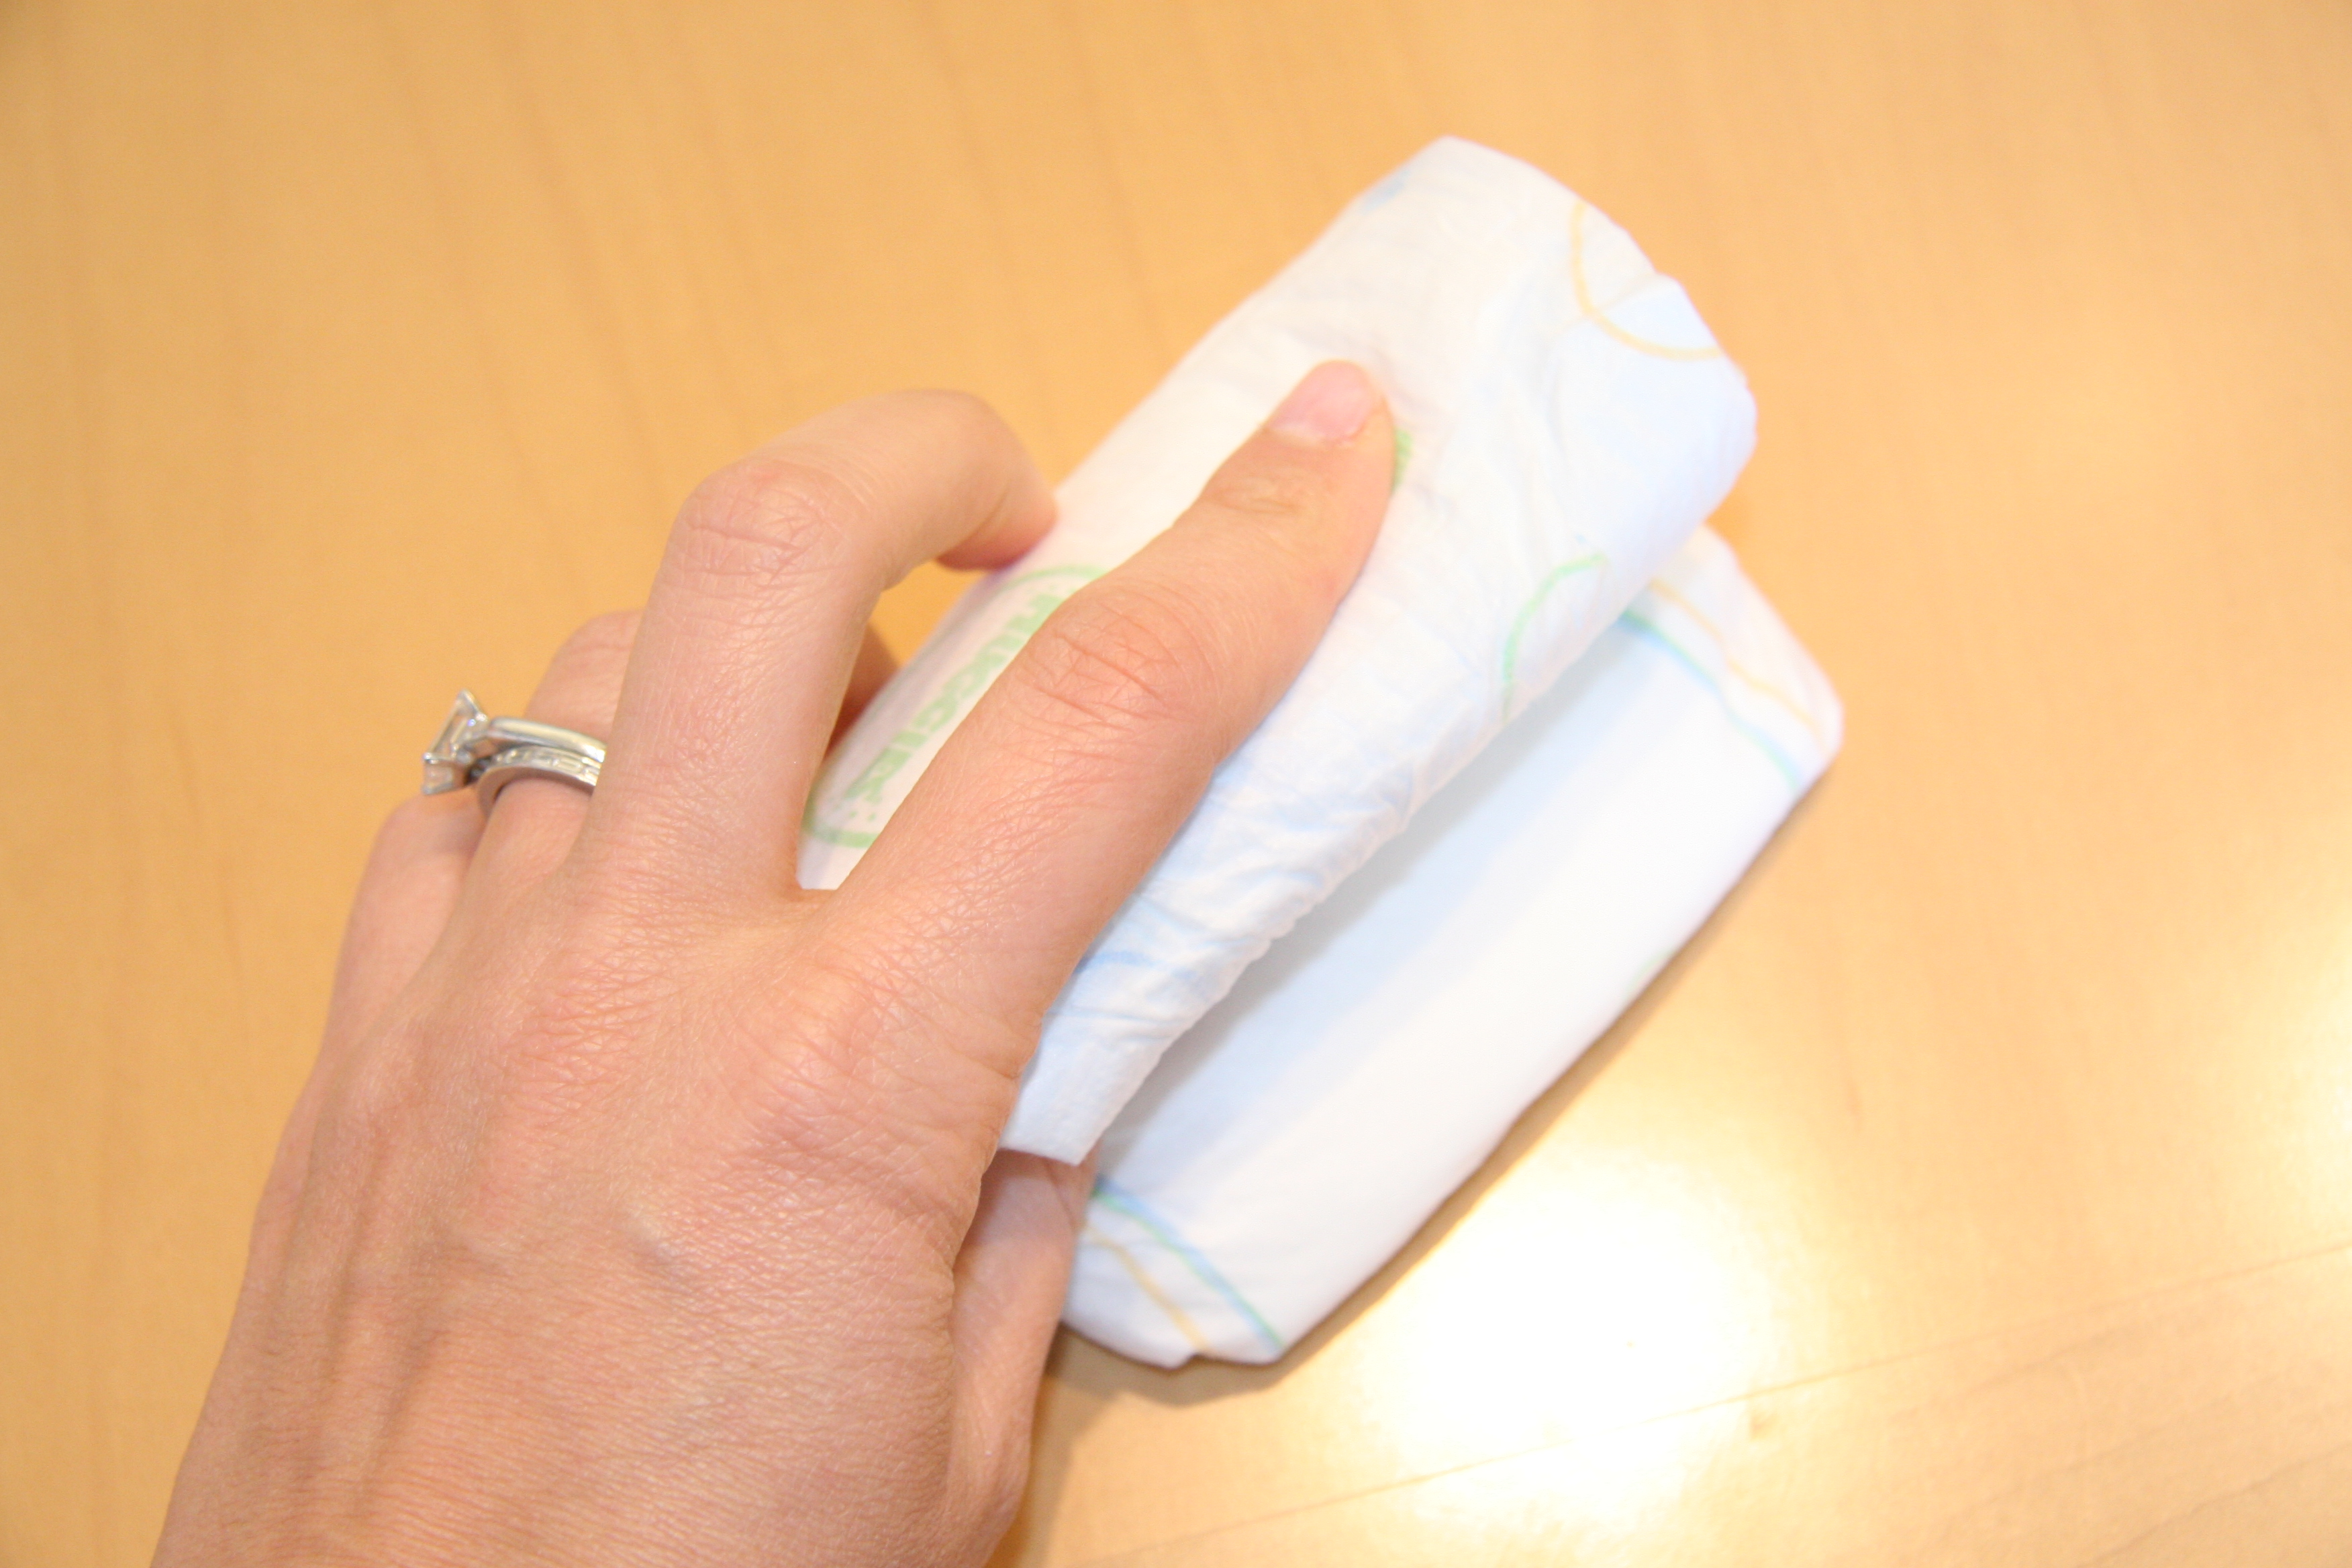 Since the loop is smaller, you will have to fold the diaper three ways.